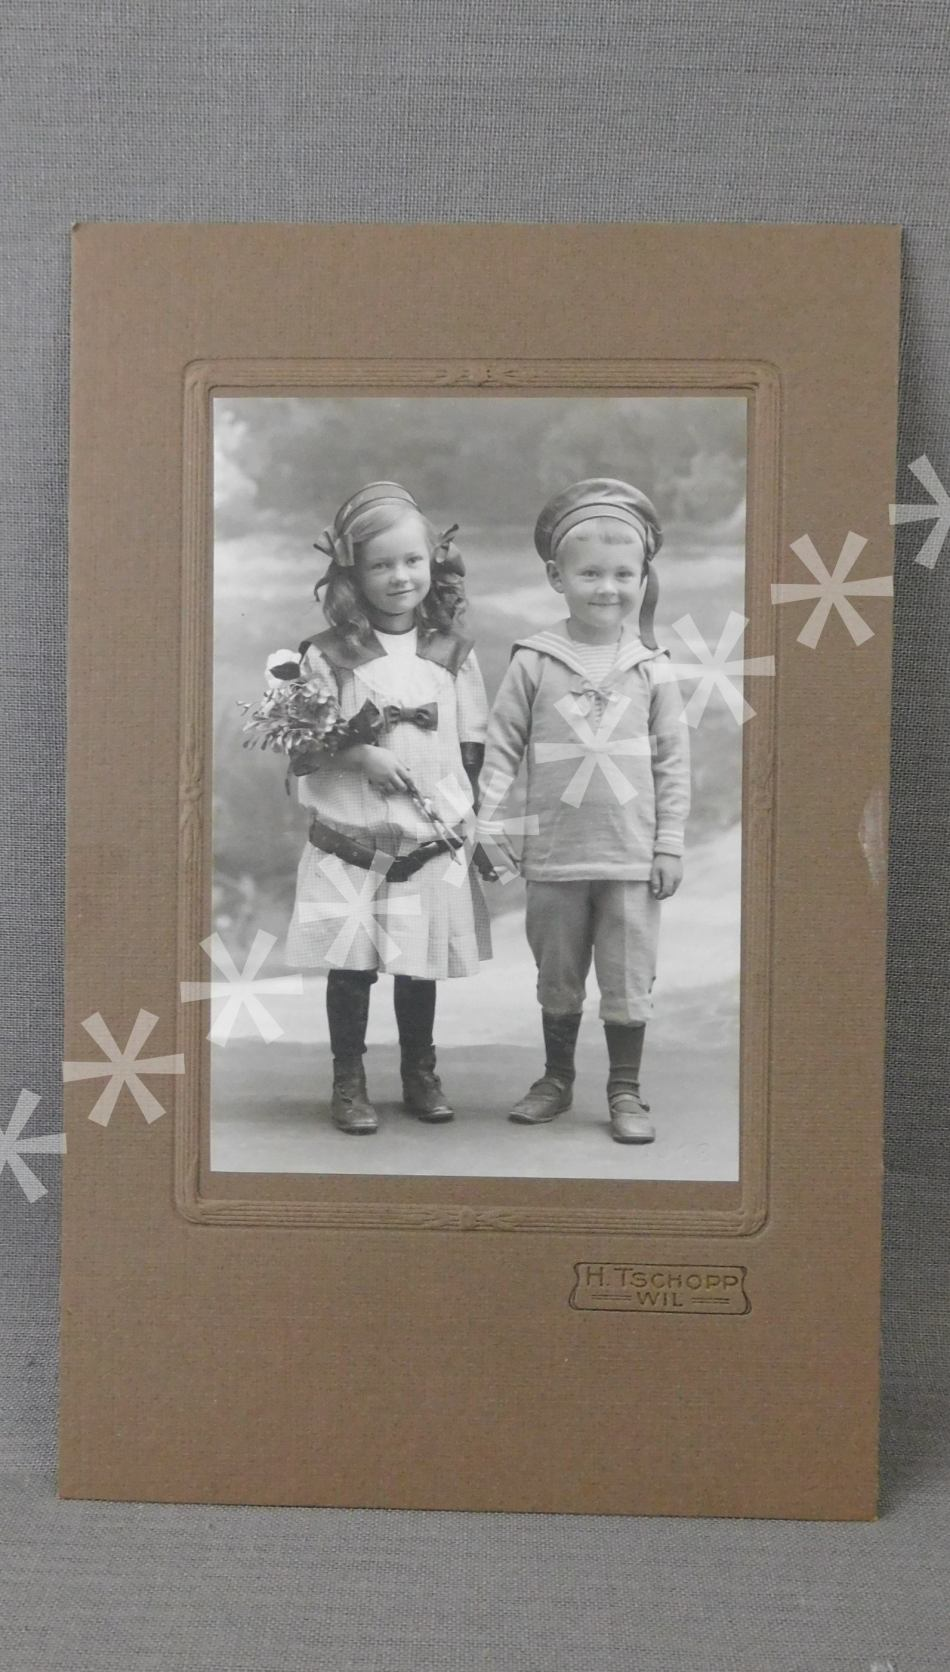 Vintage Edwardian Girl and Boy in Sailor Suit 1900s Photo, Antique Photograph